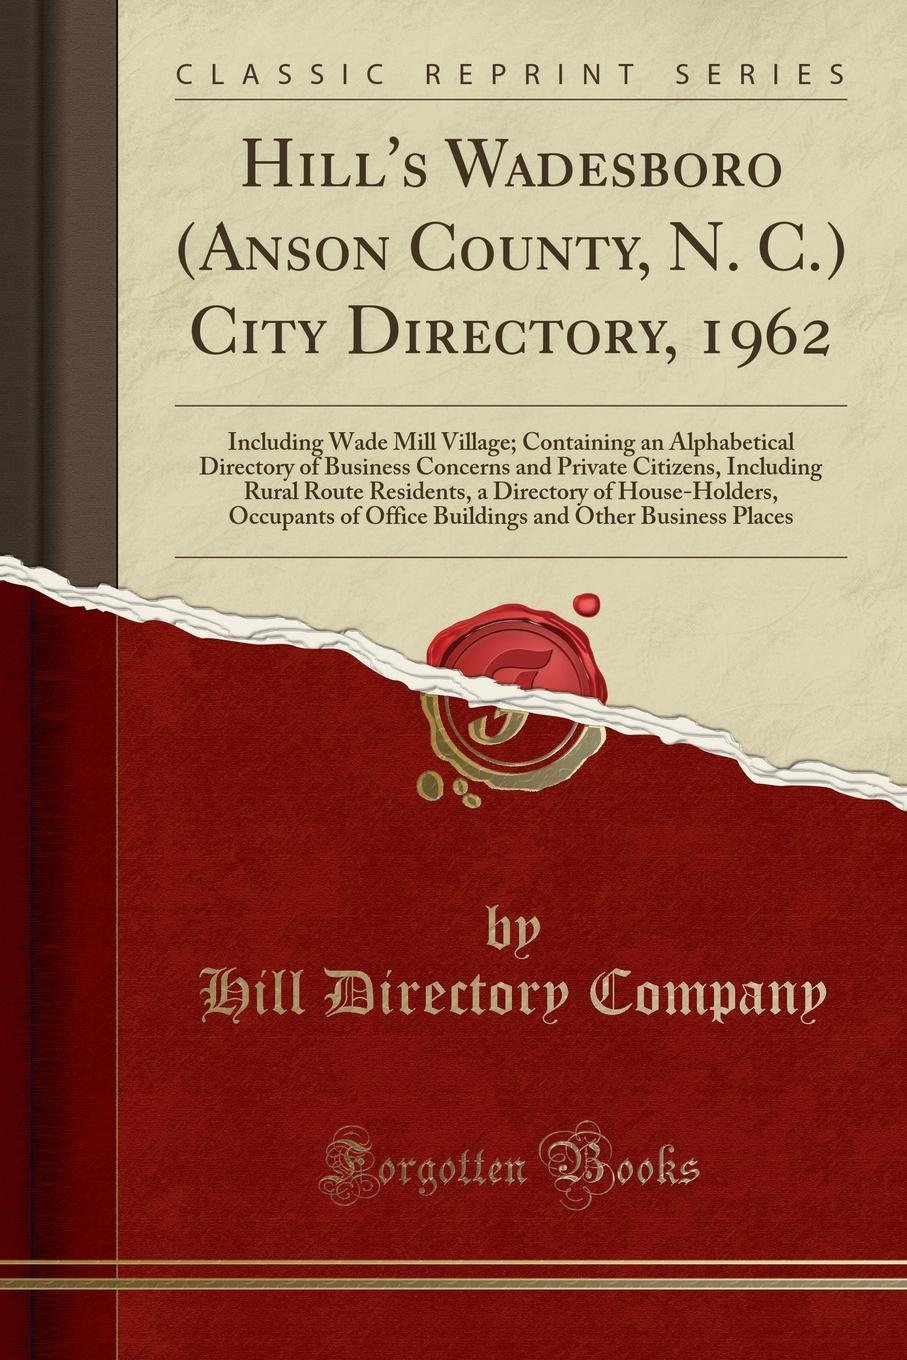 Download Hill's Wadesboro (Anson County, N. C.) City Directory, 1962: Including Wade Mill Village; Containing an Alphabetical Directory of Business Concerns ... of House-Holders, Occupants of Office Bu pdf